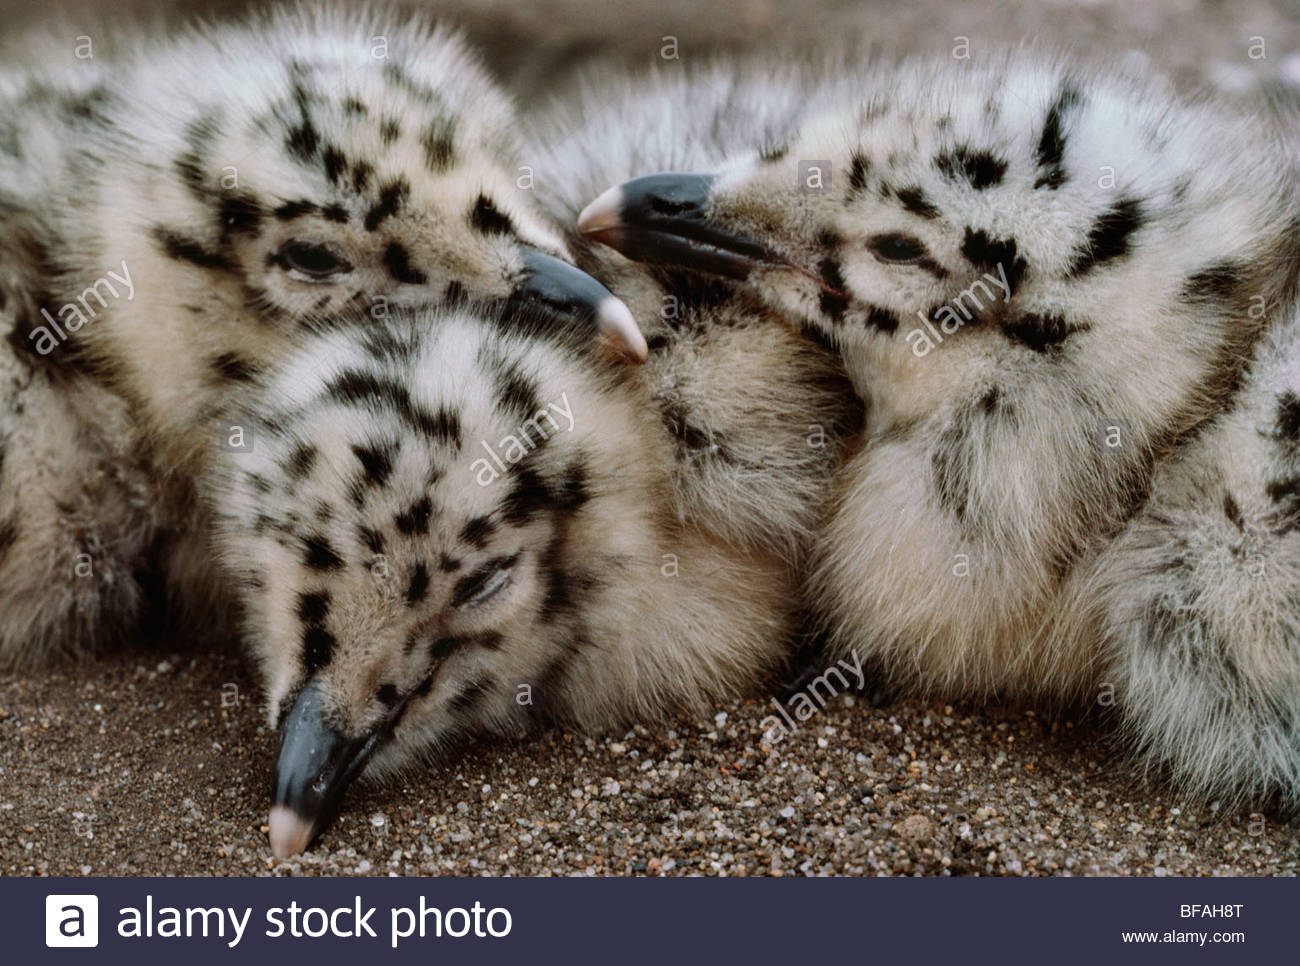 Western gull chicks, Larus occidentalis, Monterey Bay, California - Stock Image